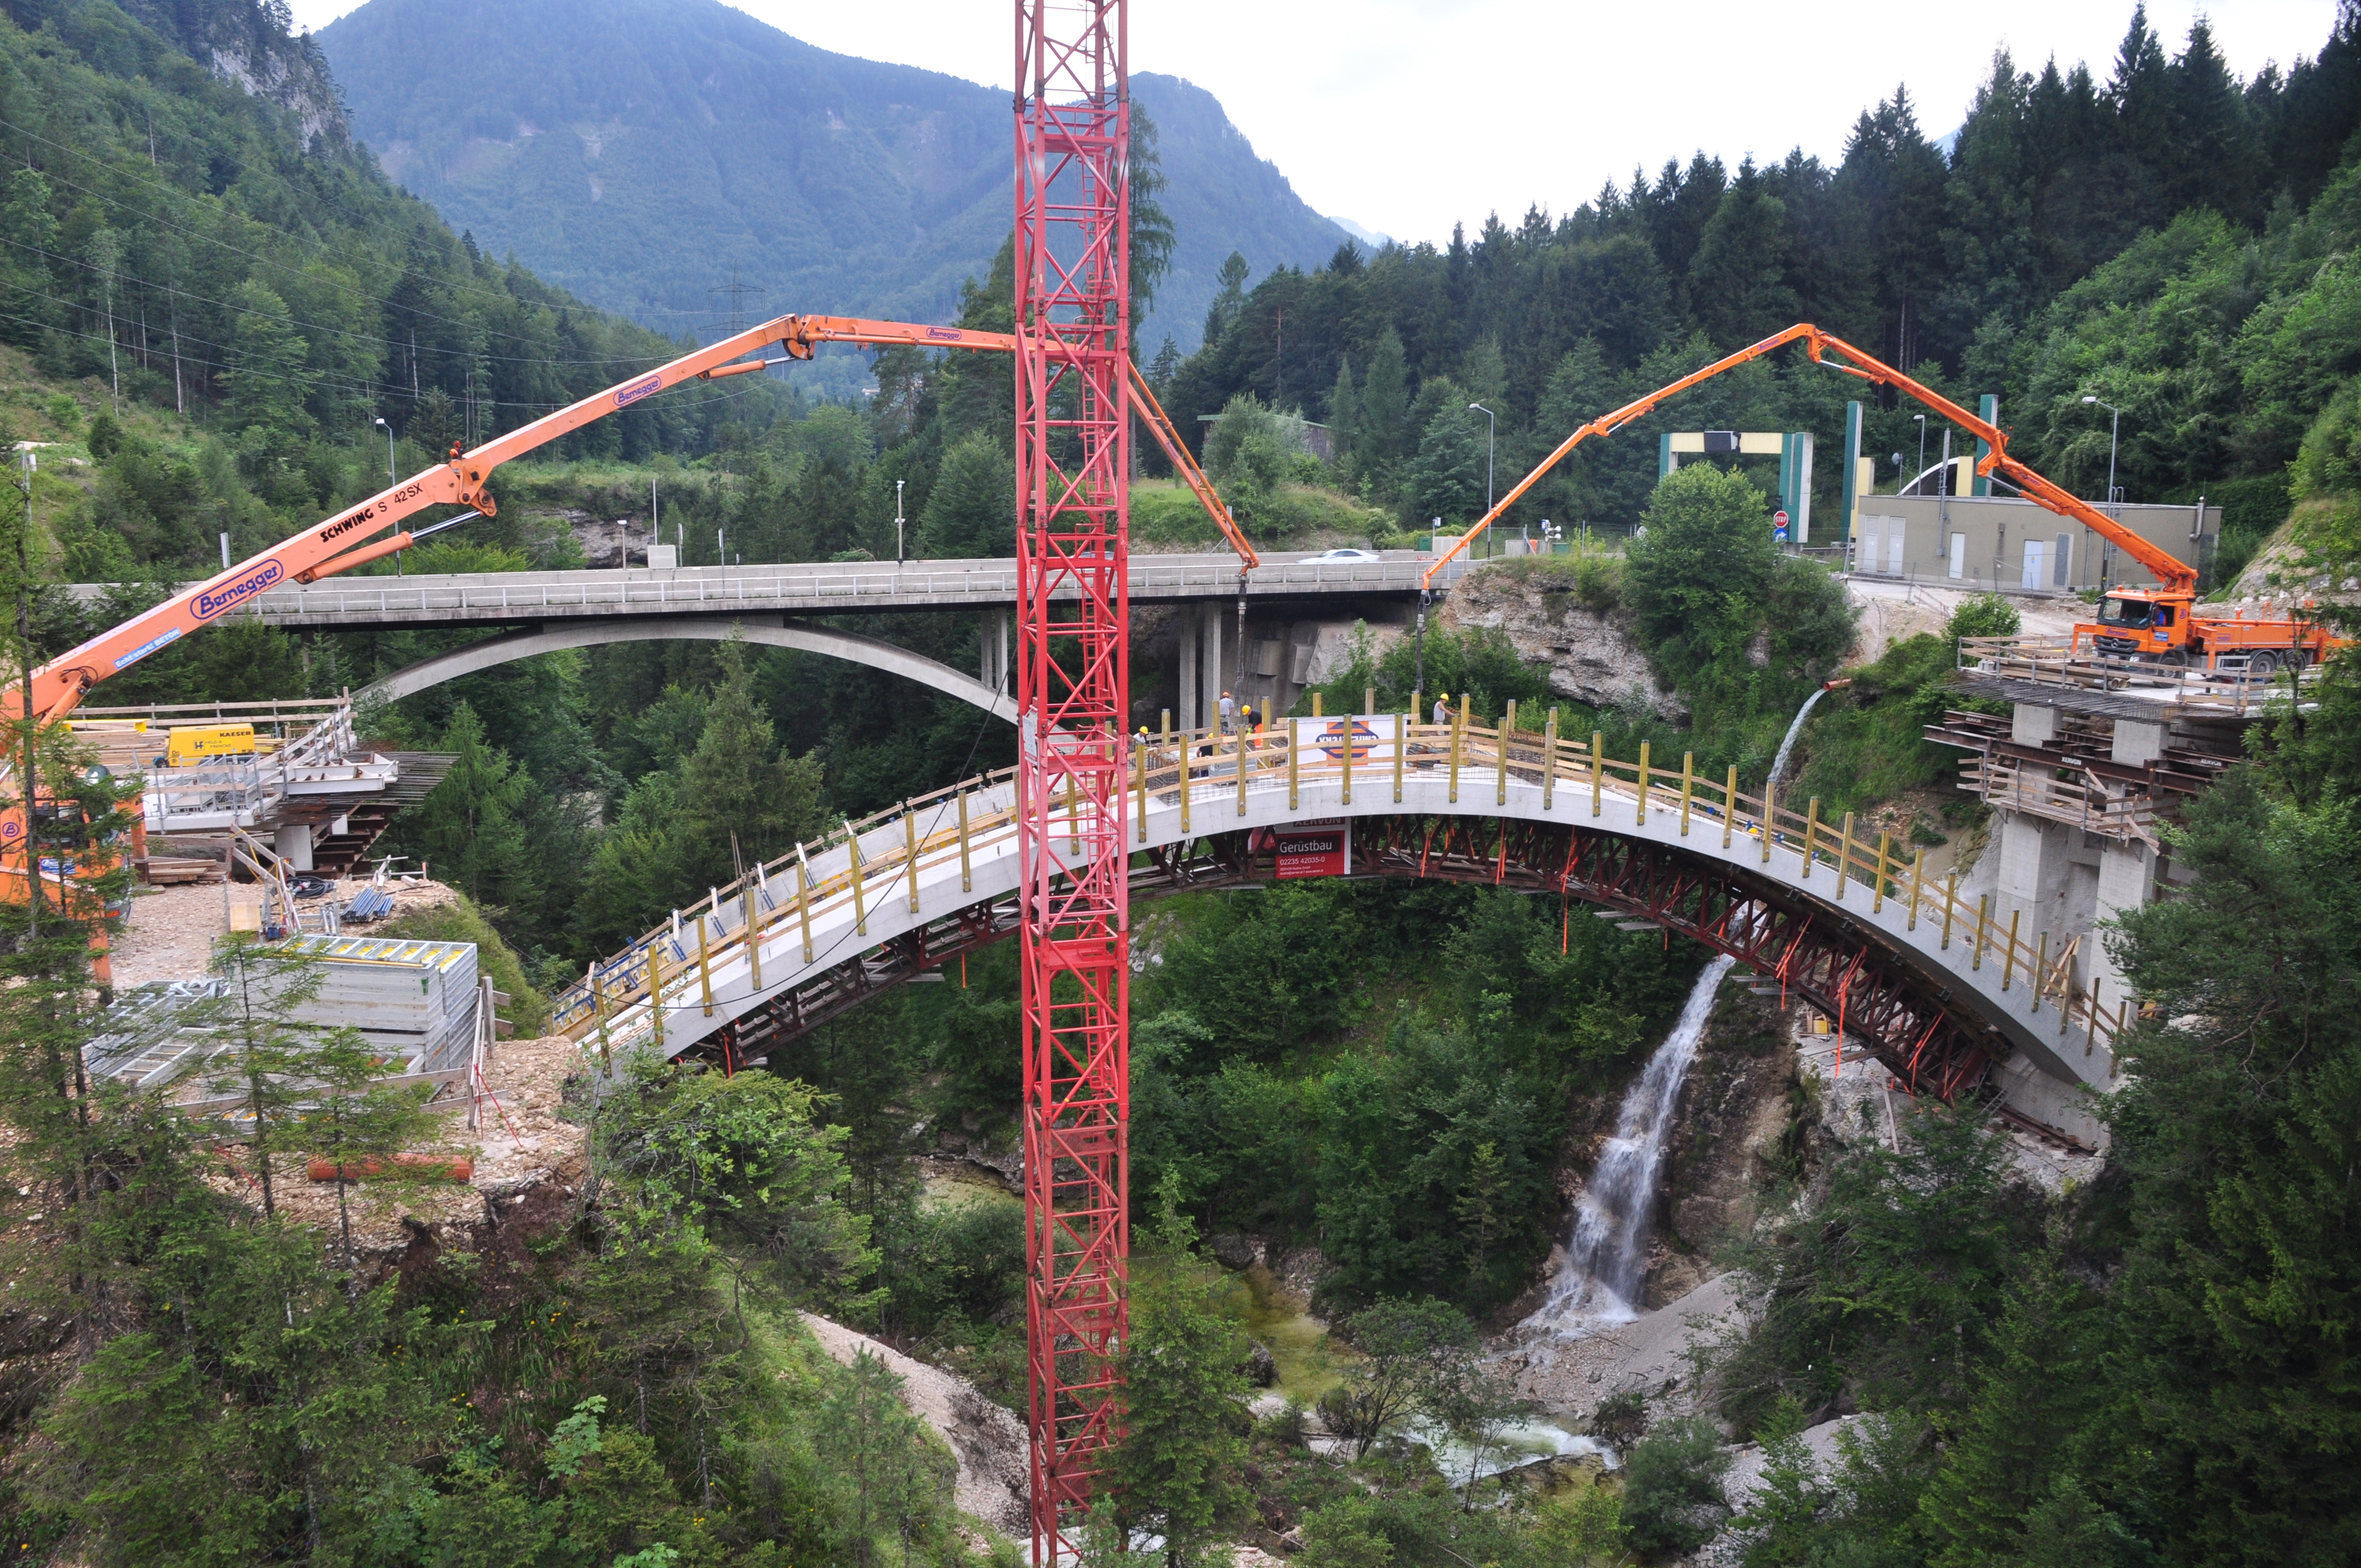 A9 Teichlbrücke - Construction de routes et de ponts